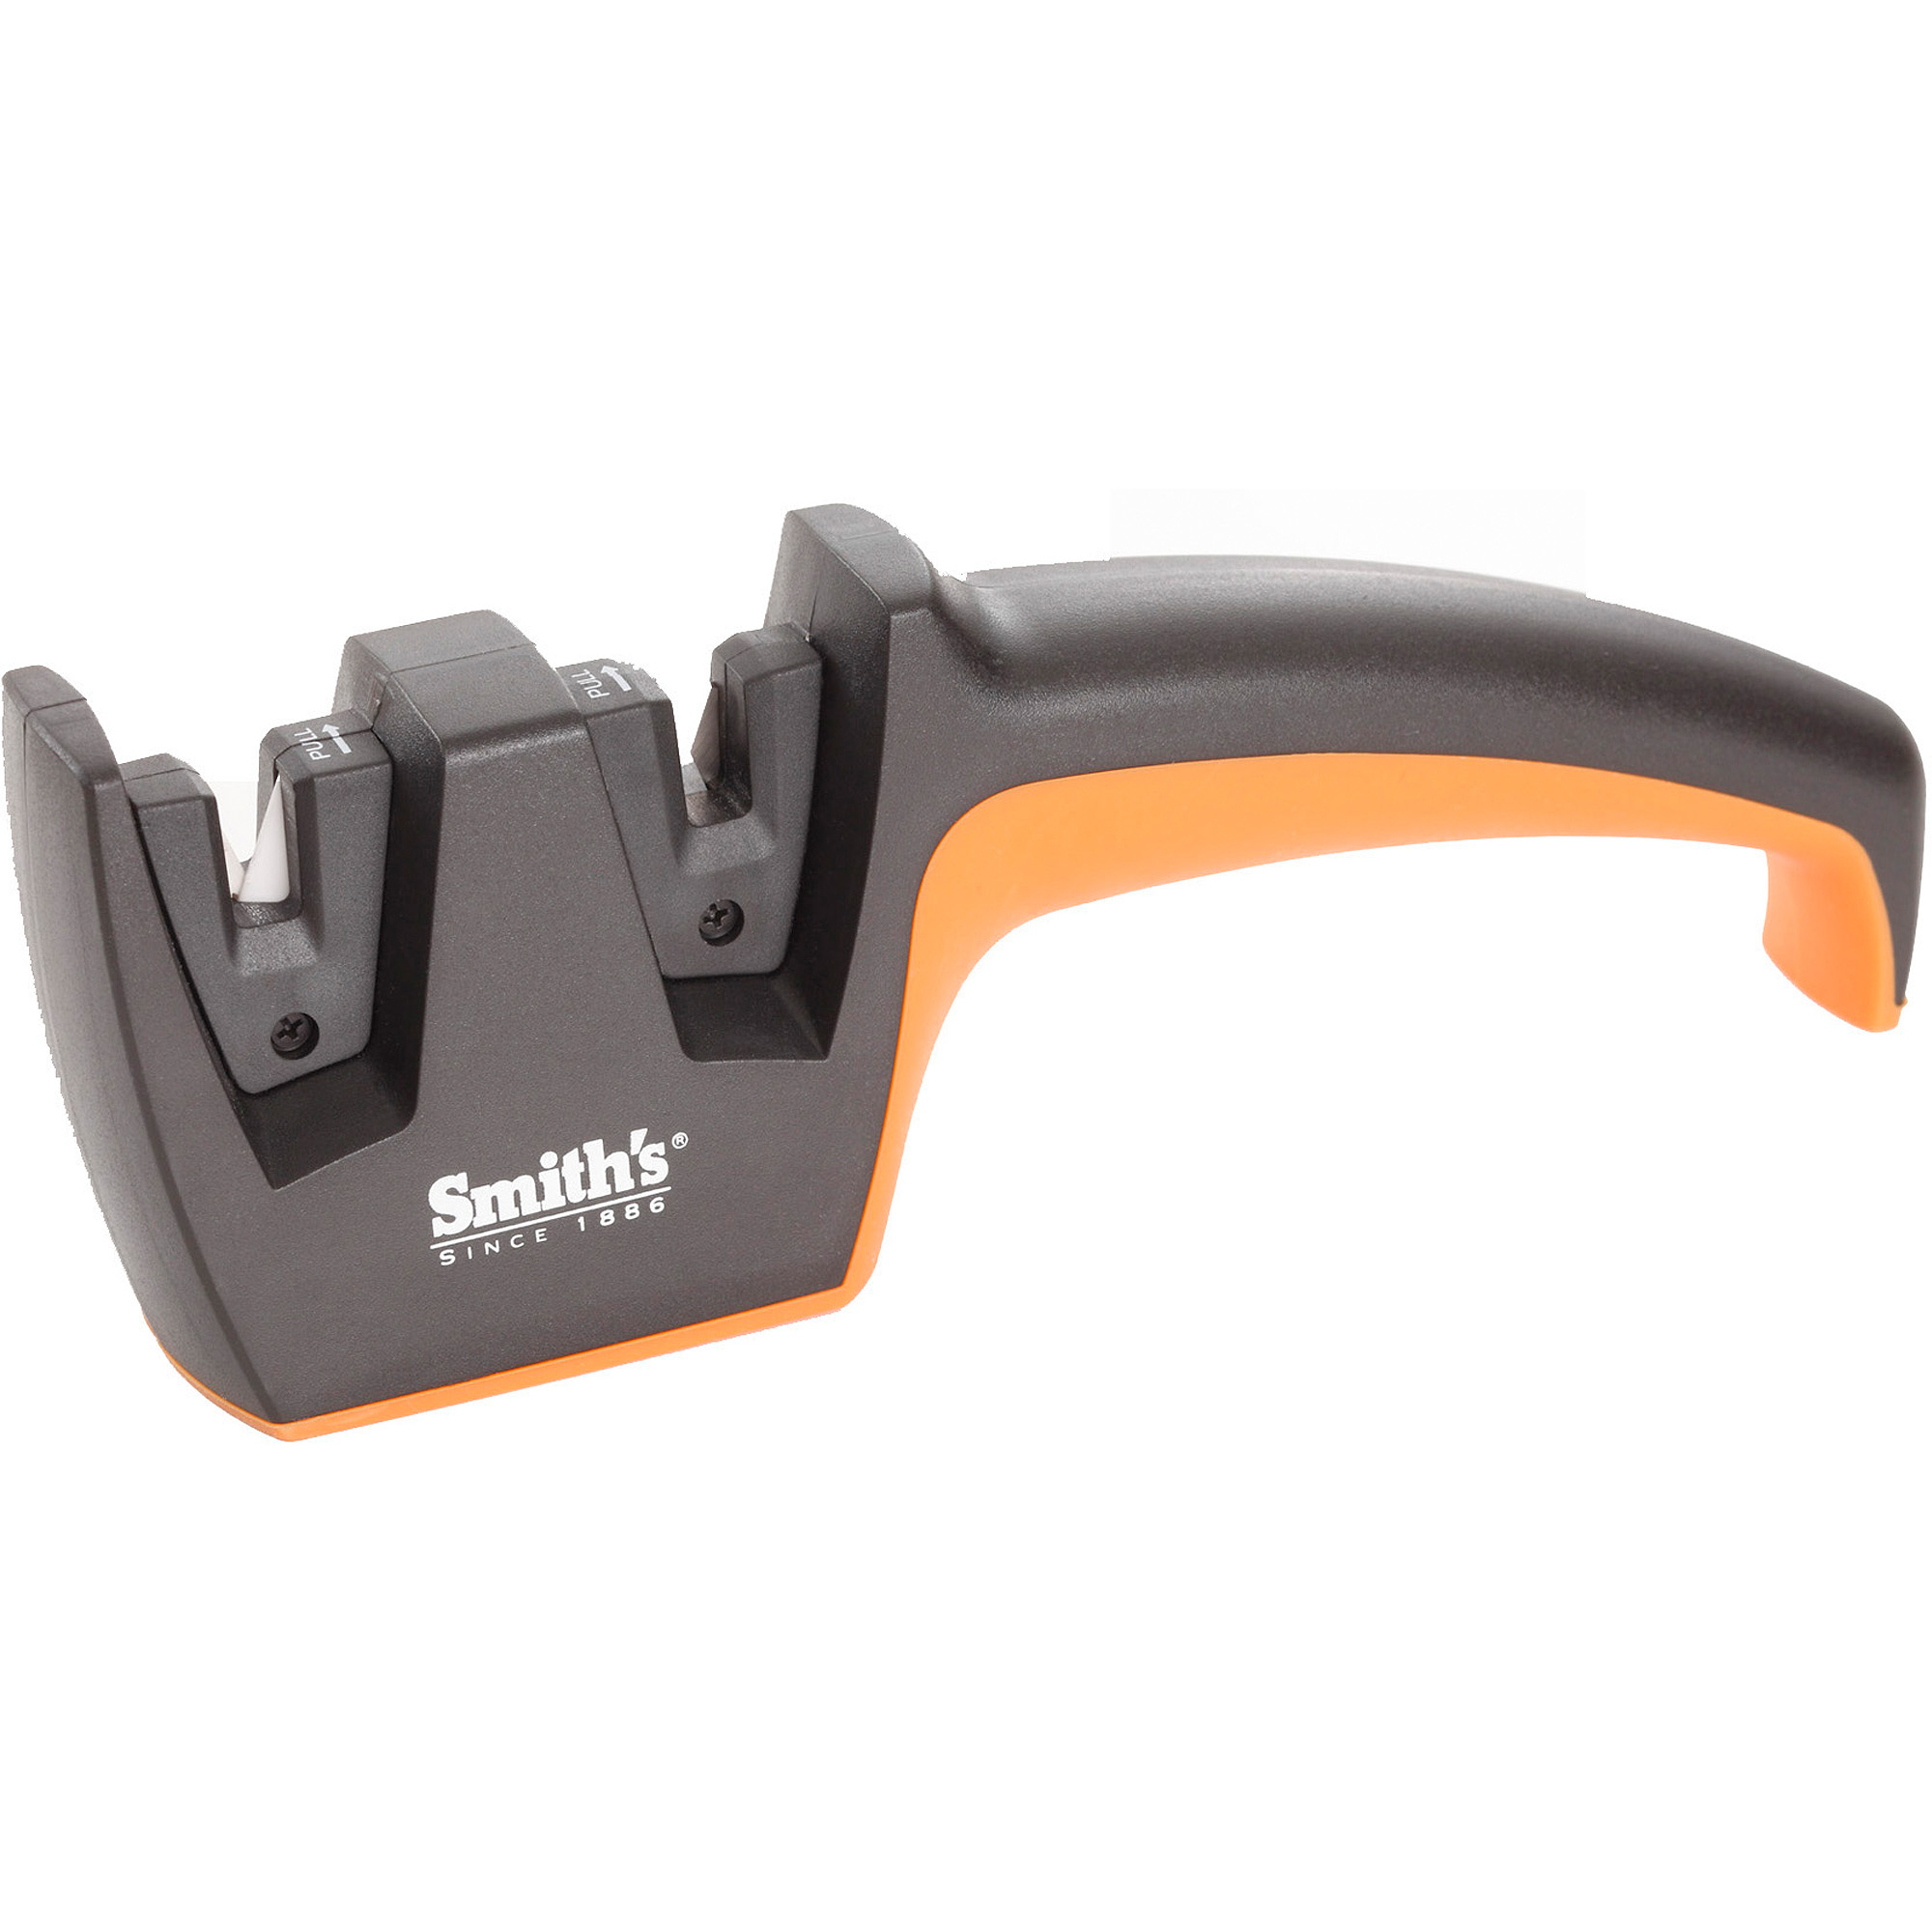 Smith's Edge Pro Knife Sharpener by SMITHS CONSUMER PRODUCTS INC